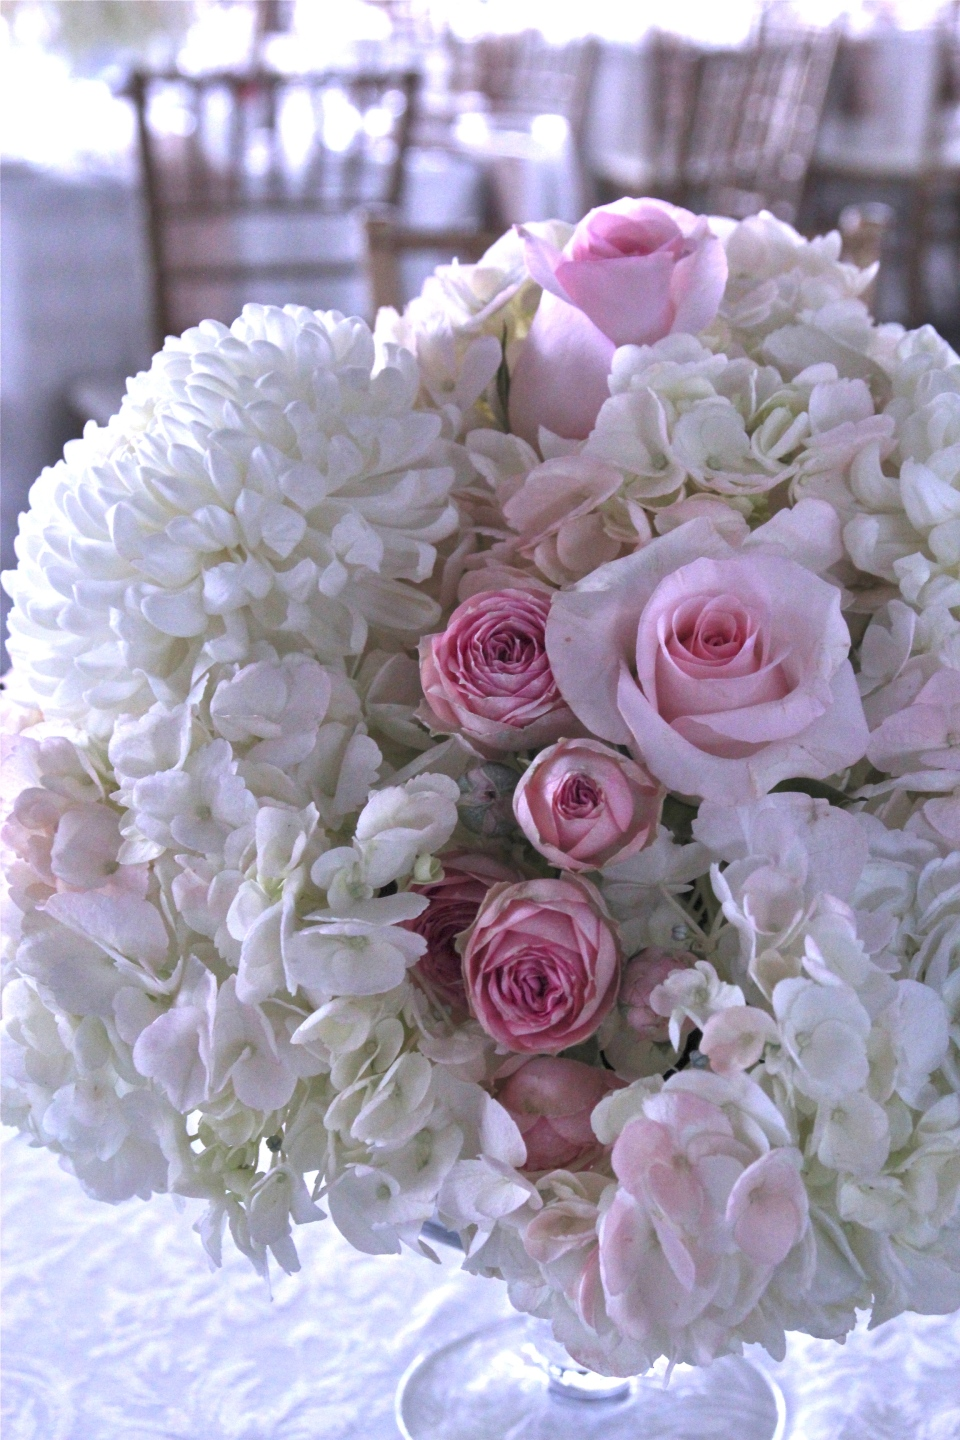 Blush and white centerpieces of hydrangea, roses, spray roses and mums.